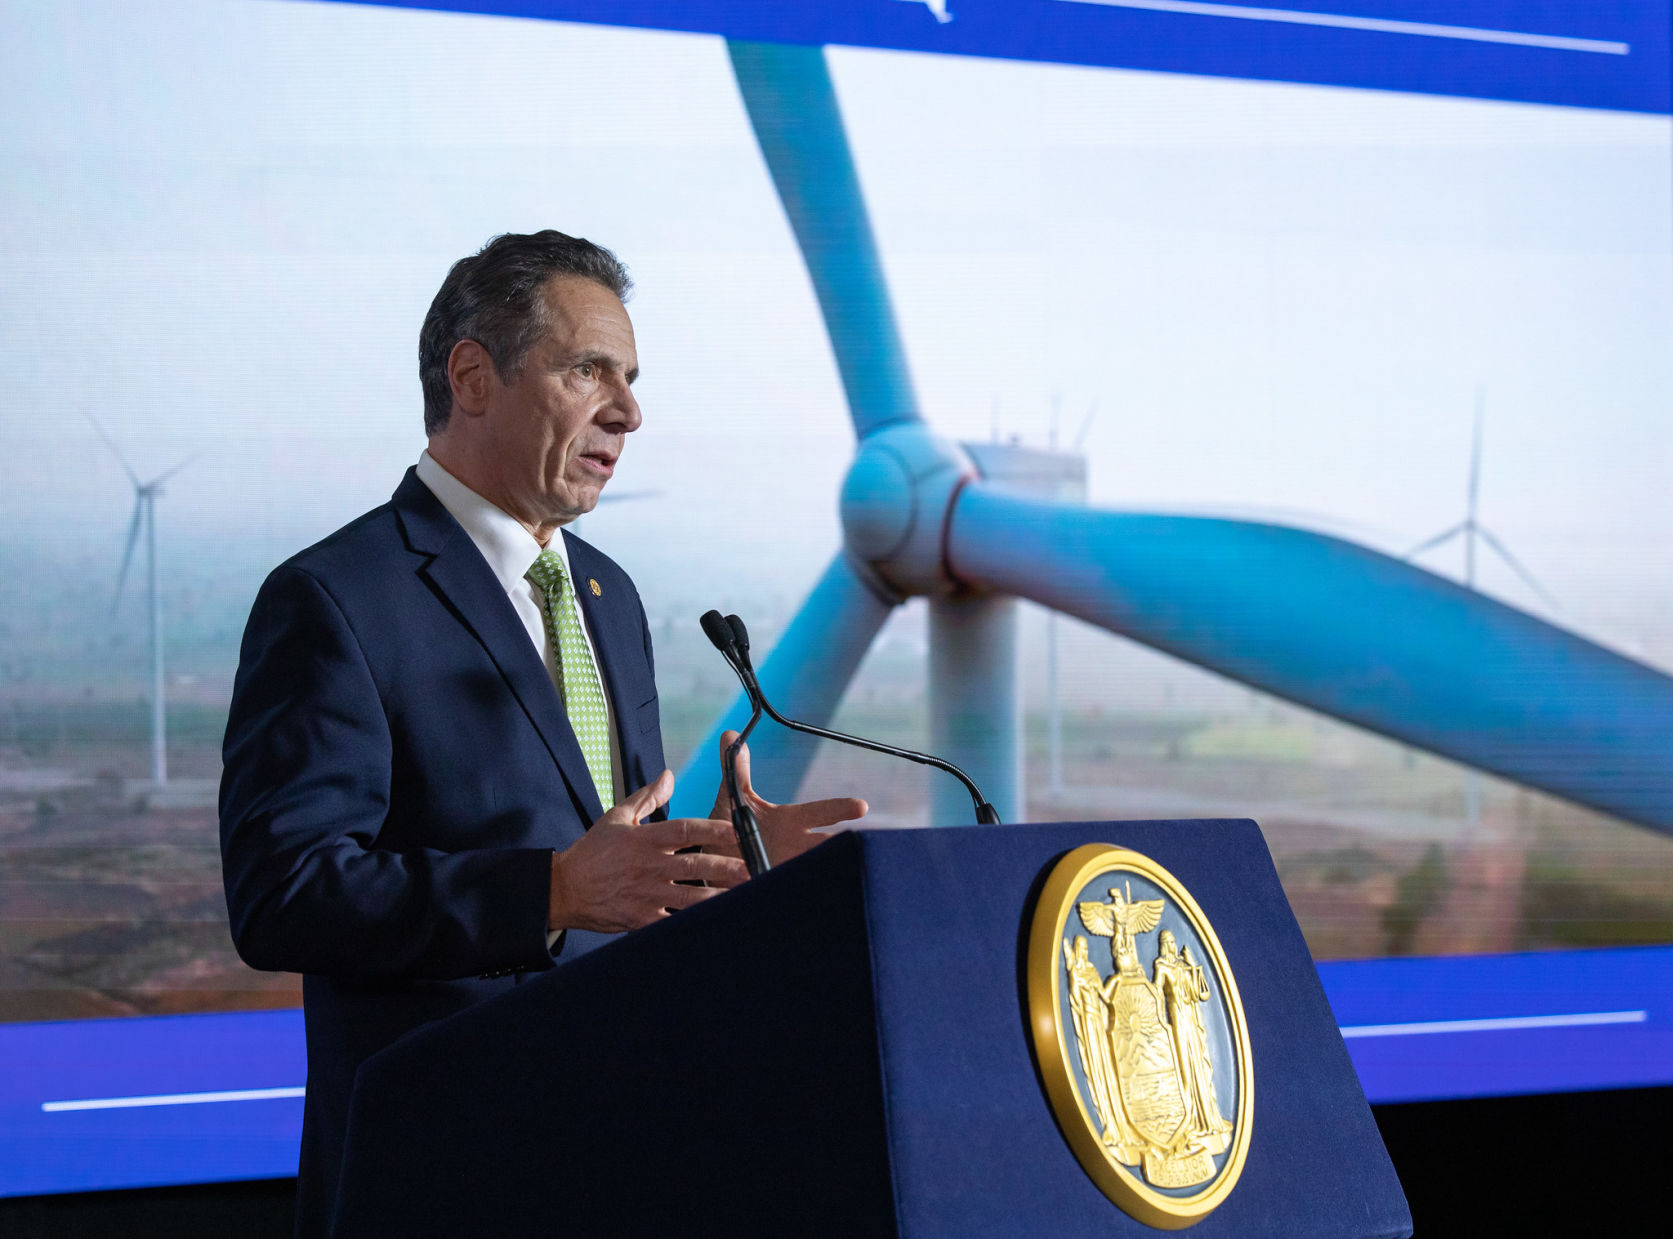 Cuomo outlines ambitious green dreams